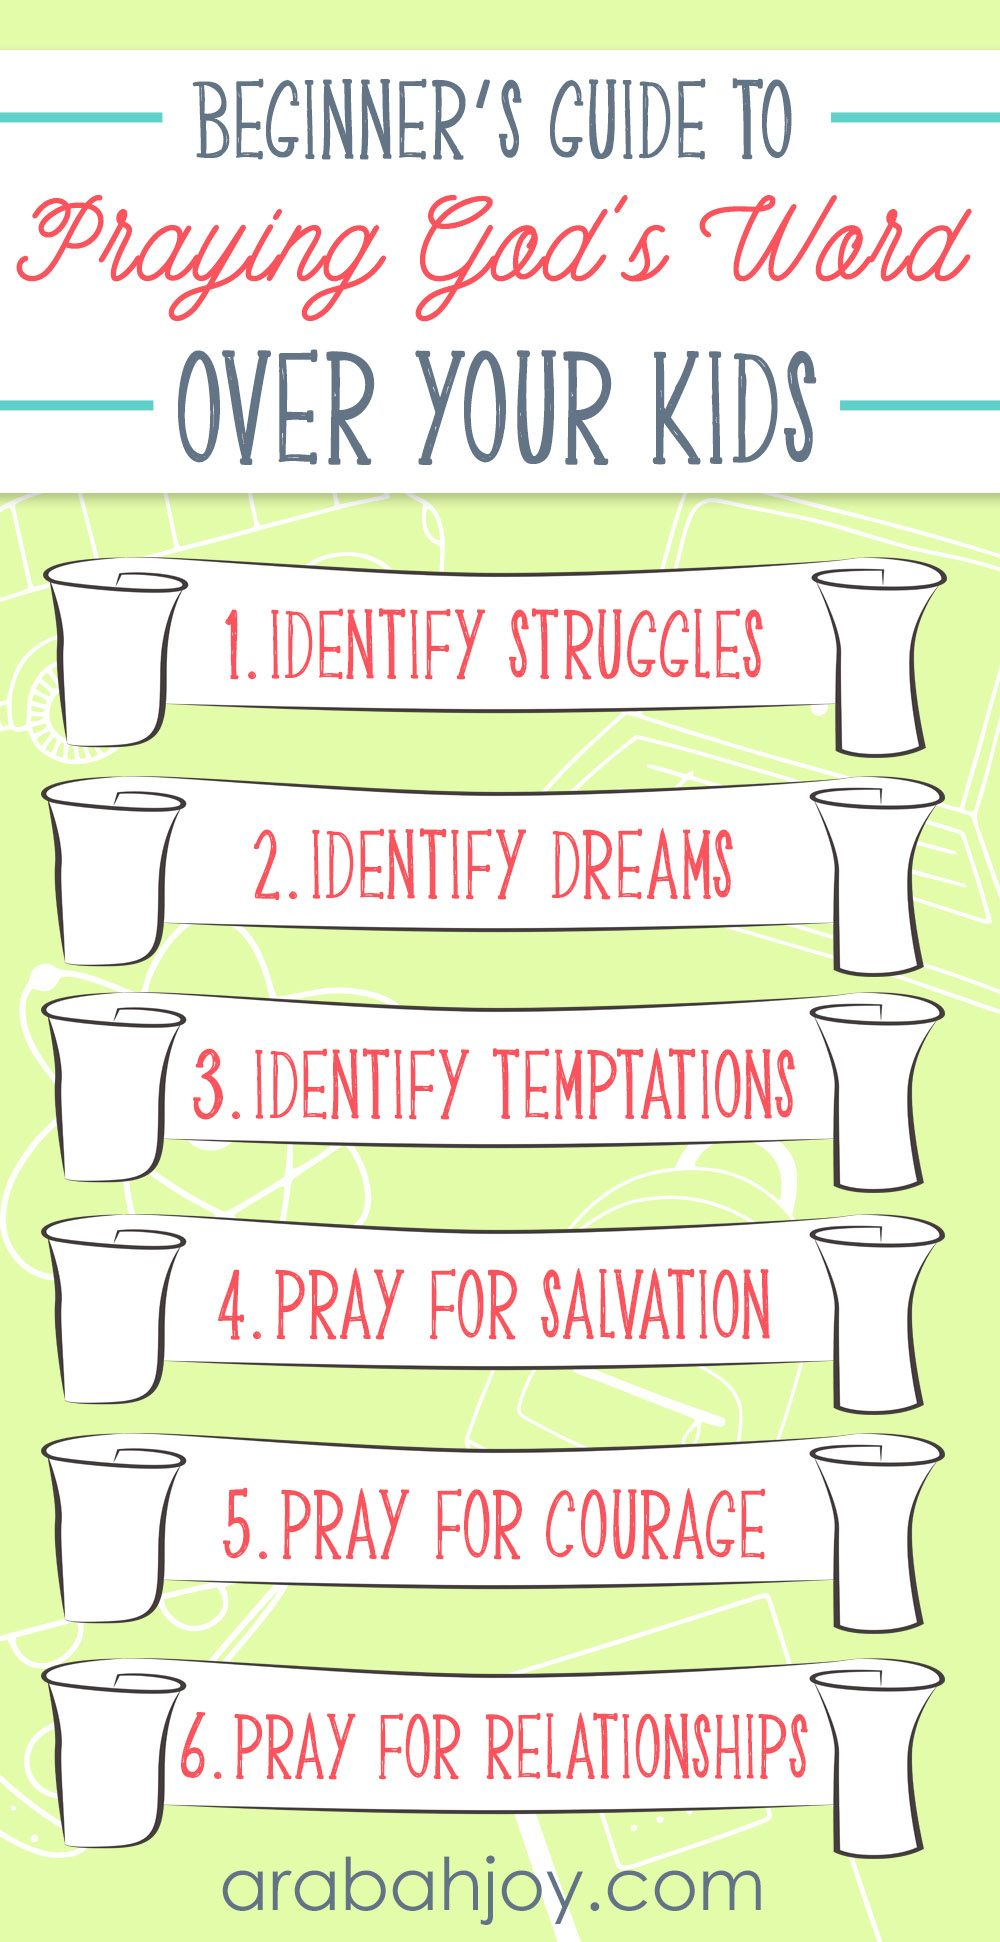 Use these prayer points for children as a guide to praying God